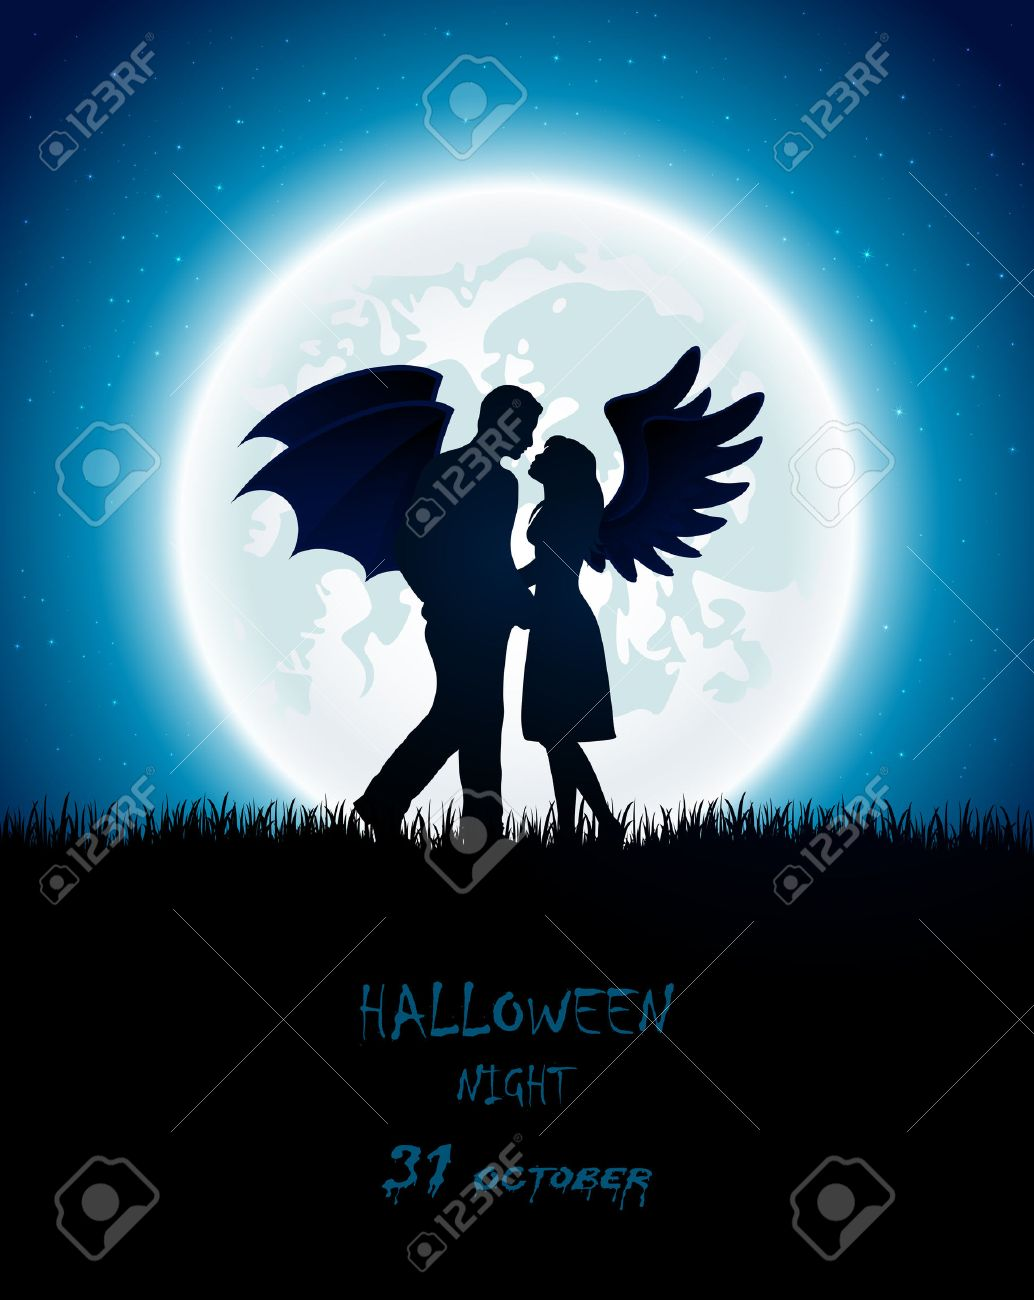 Dark Halloween night with enamored couple of angel and devil, full Moon on the sky background, illustration. - 43177049